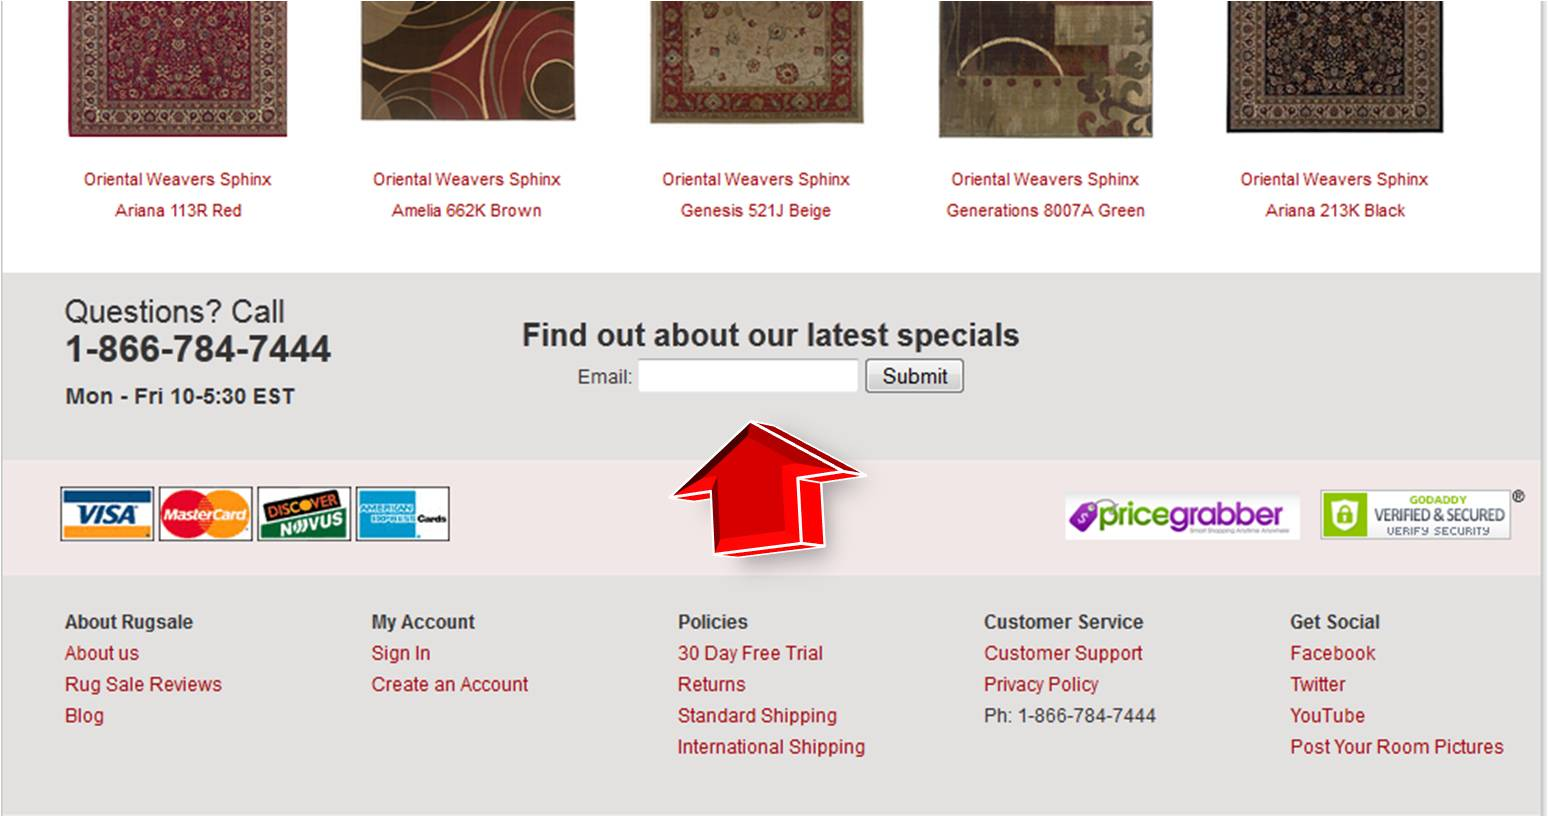 truezloadmw.ga was established in with a commitment to providing consumers area rugs at discount rug prices. truezloadmw.ga is a leader in online area rugs and has operations all over New England.